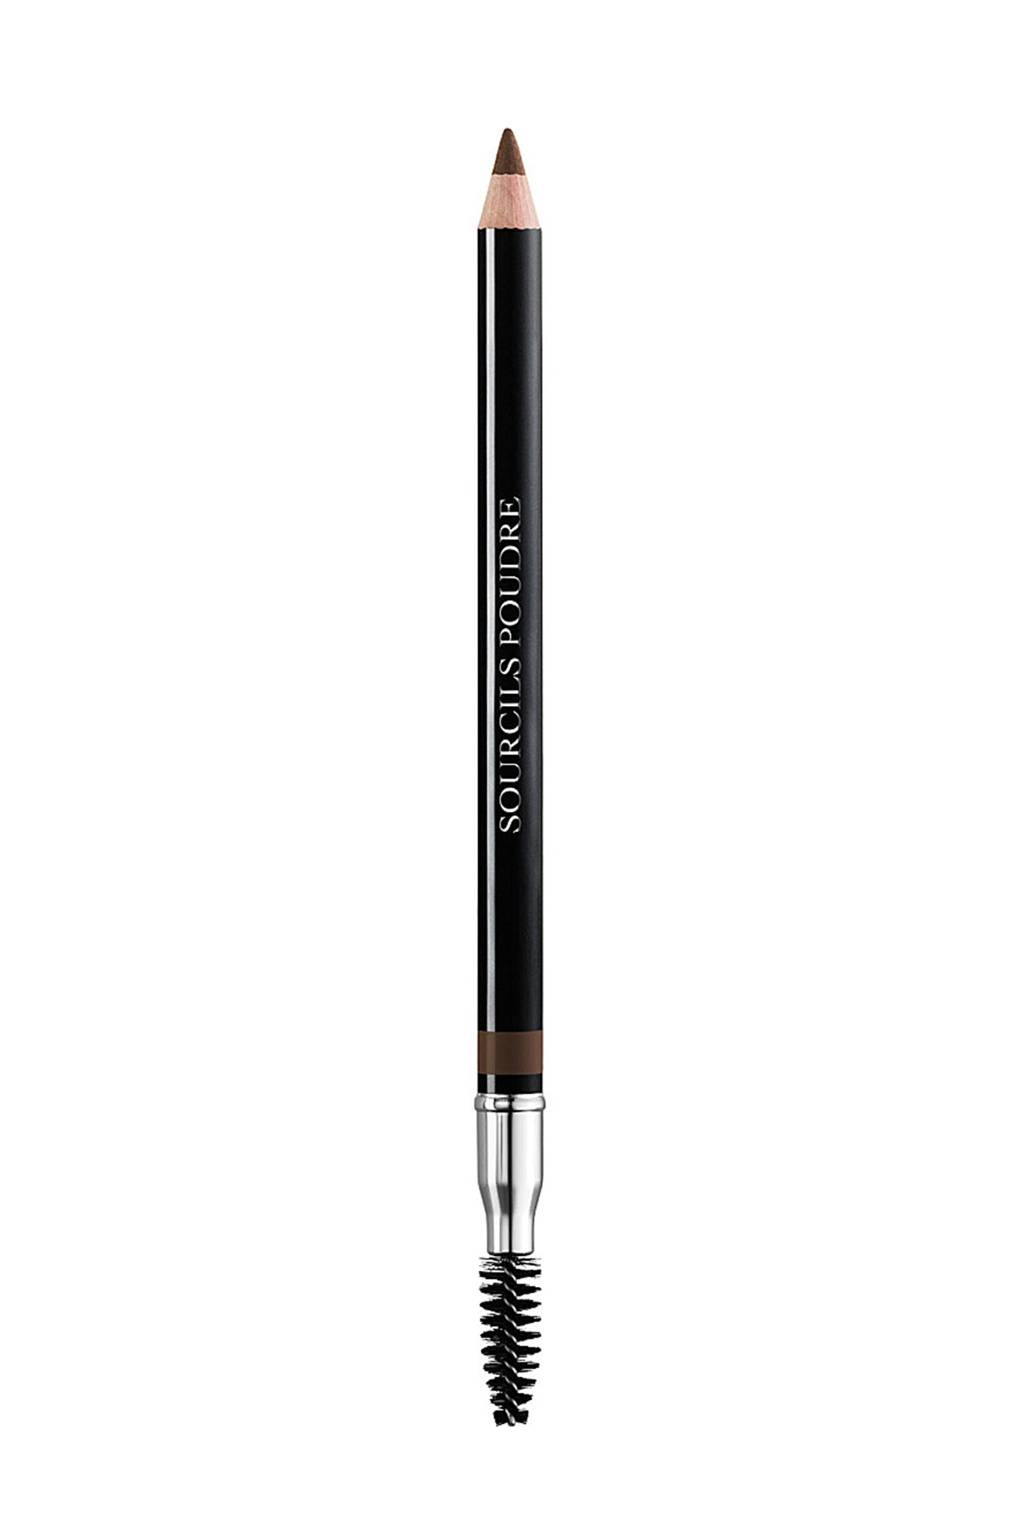 10 Best Eyebrow Pencil Products 2018 How To Use British Vogue